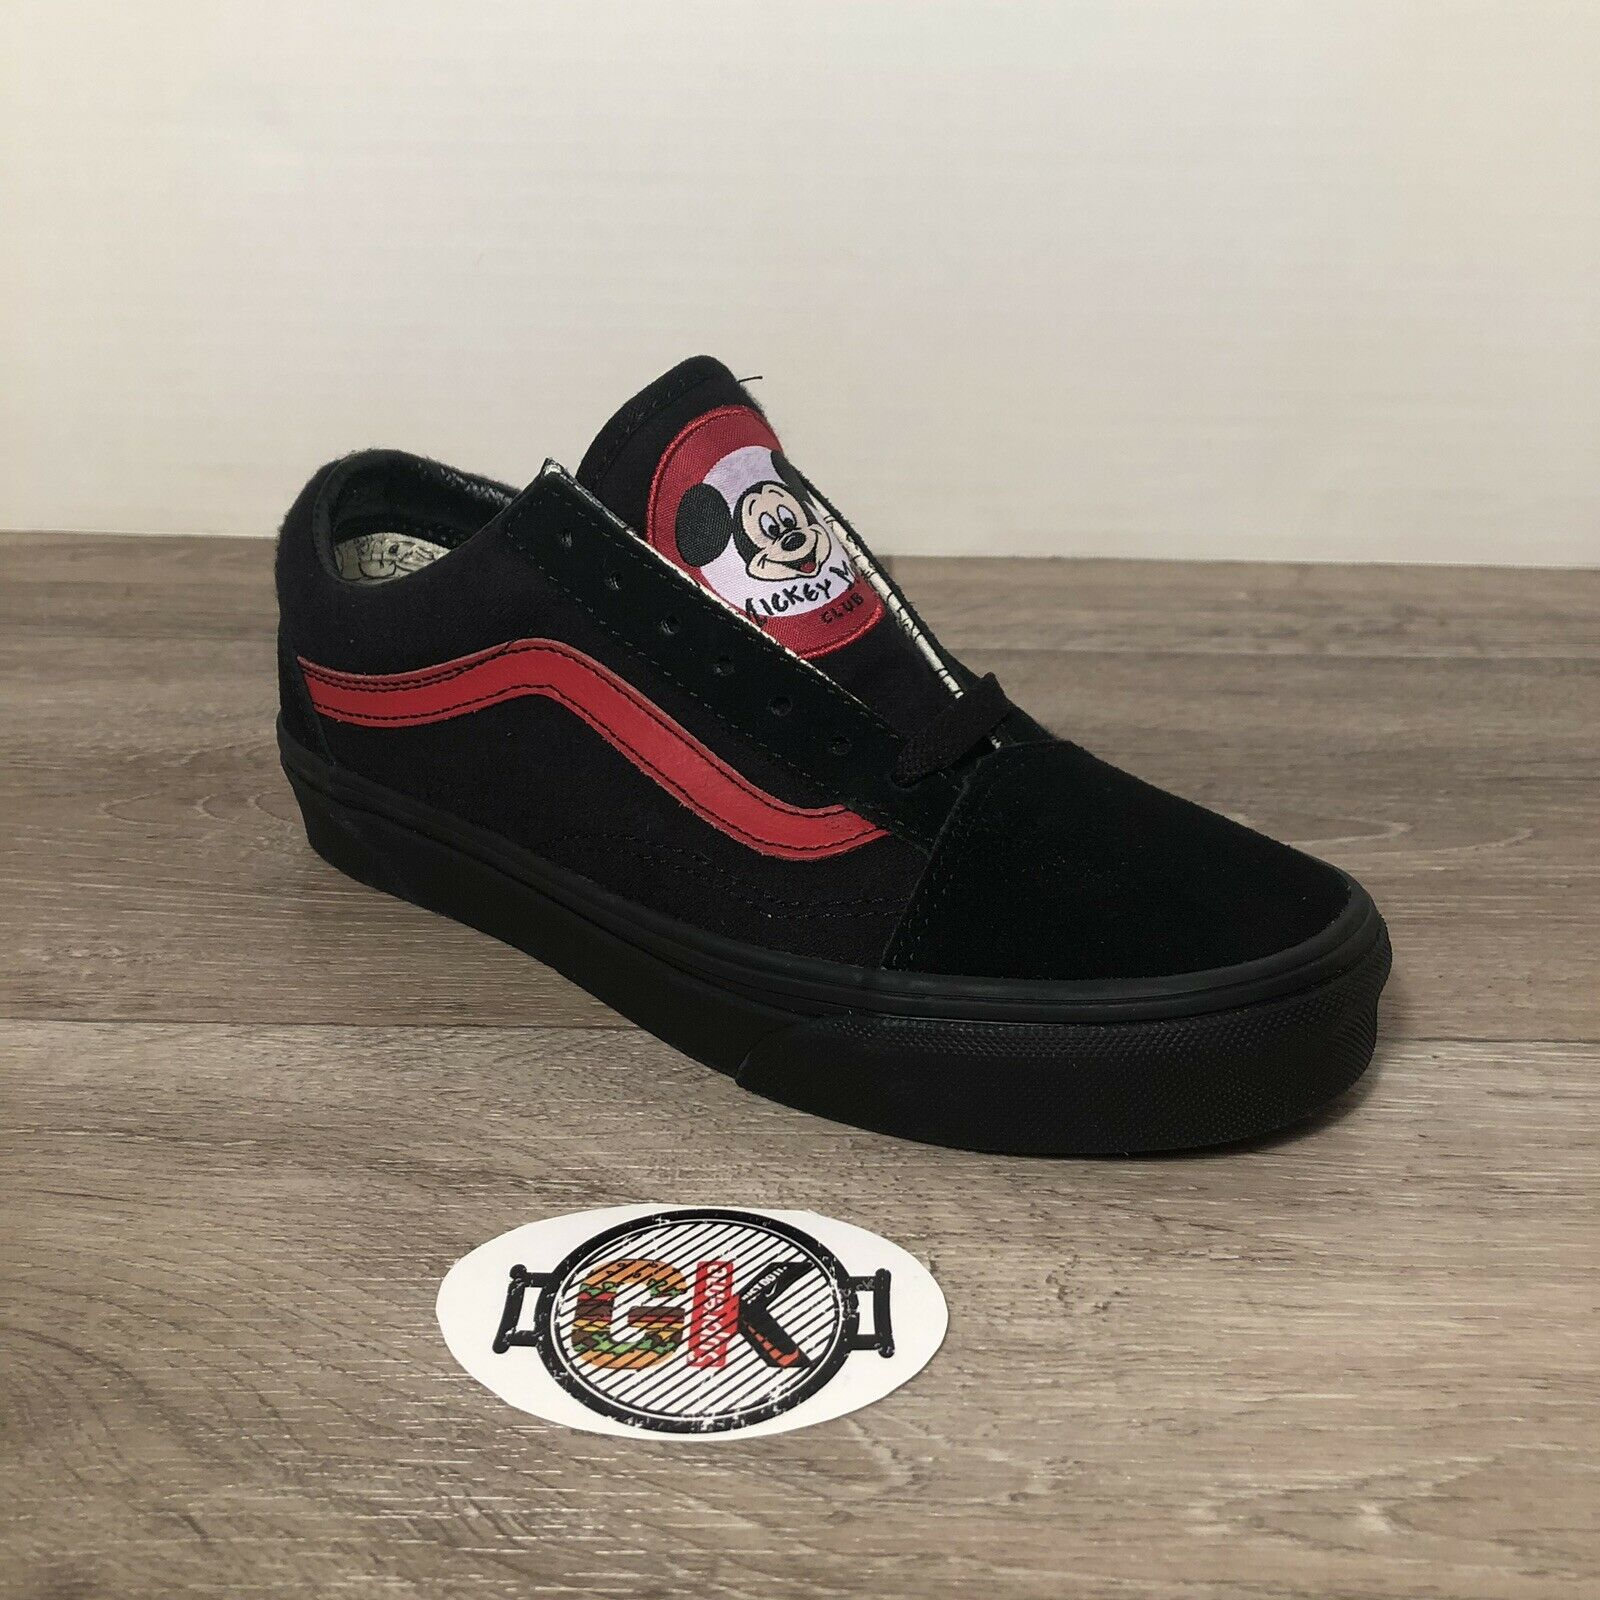 NEW w  box Disney Vans Mickey Mouse Club 90th Old Skool zapatos MEN 4.5 mujer 6